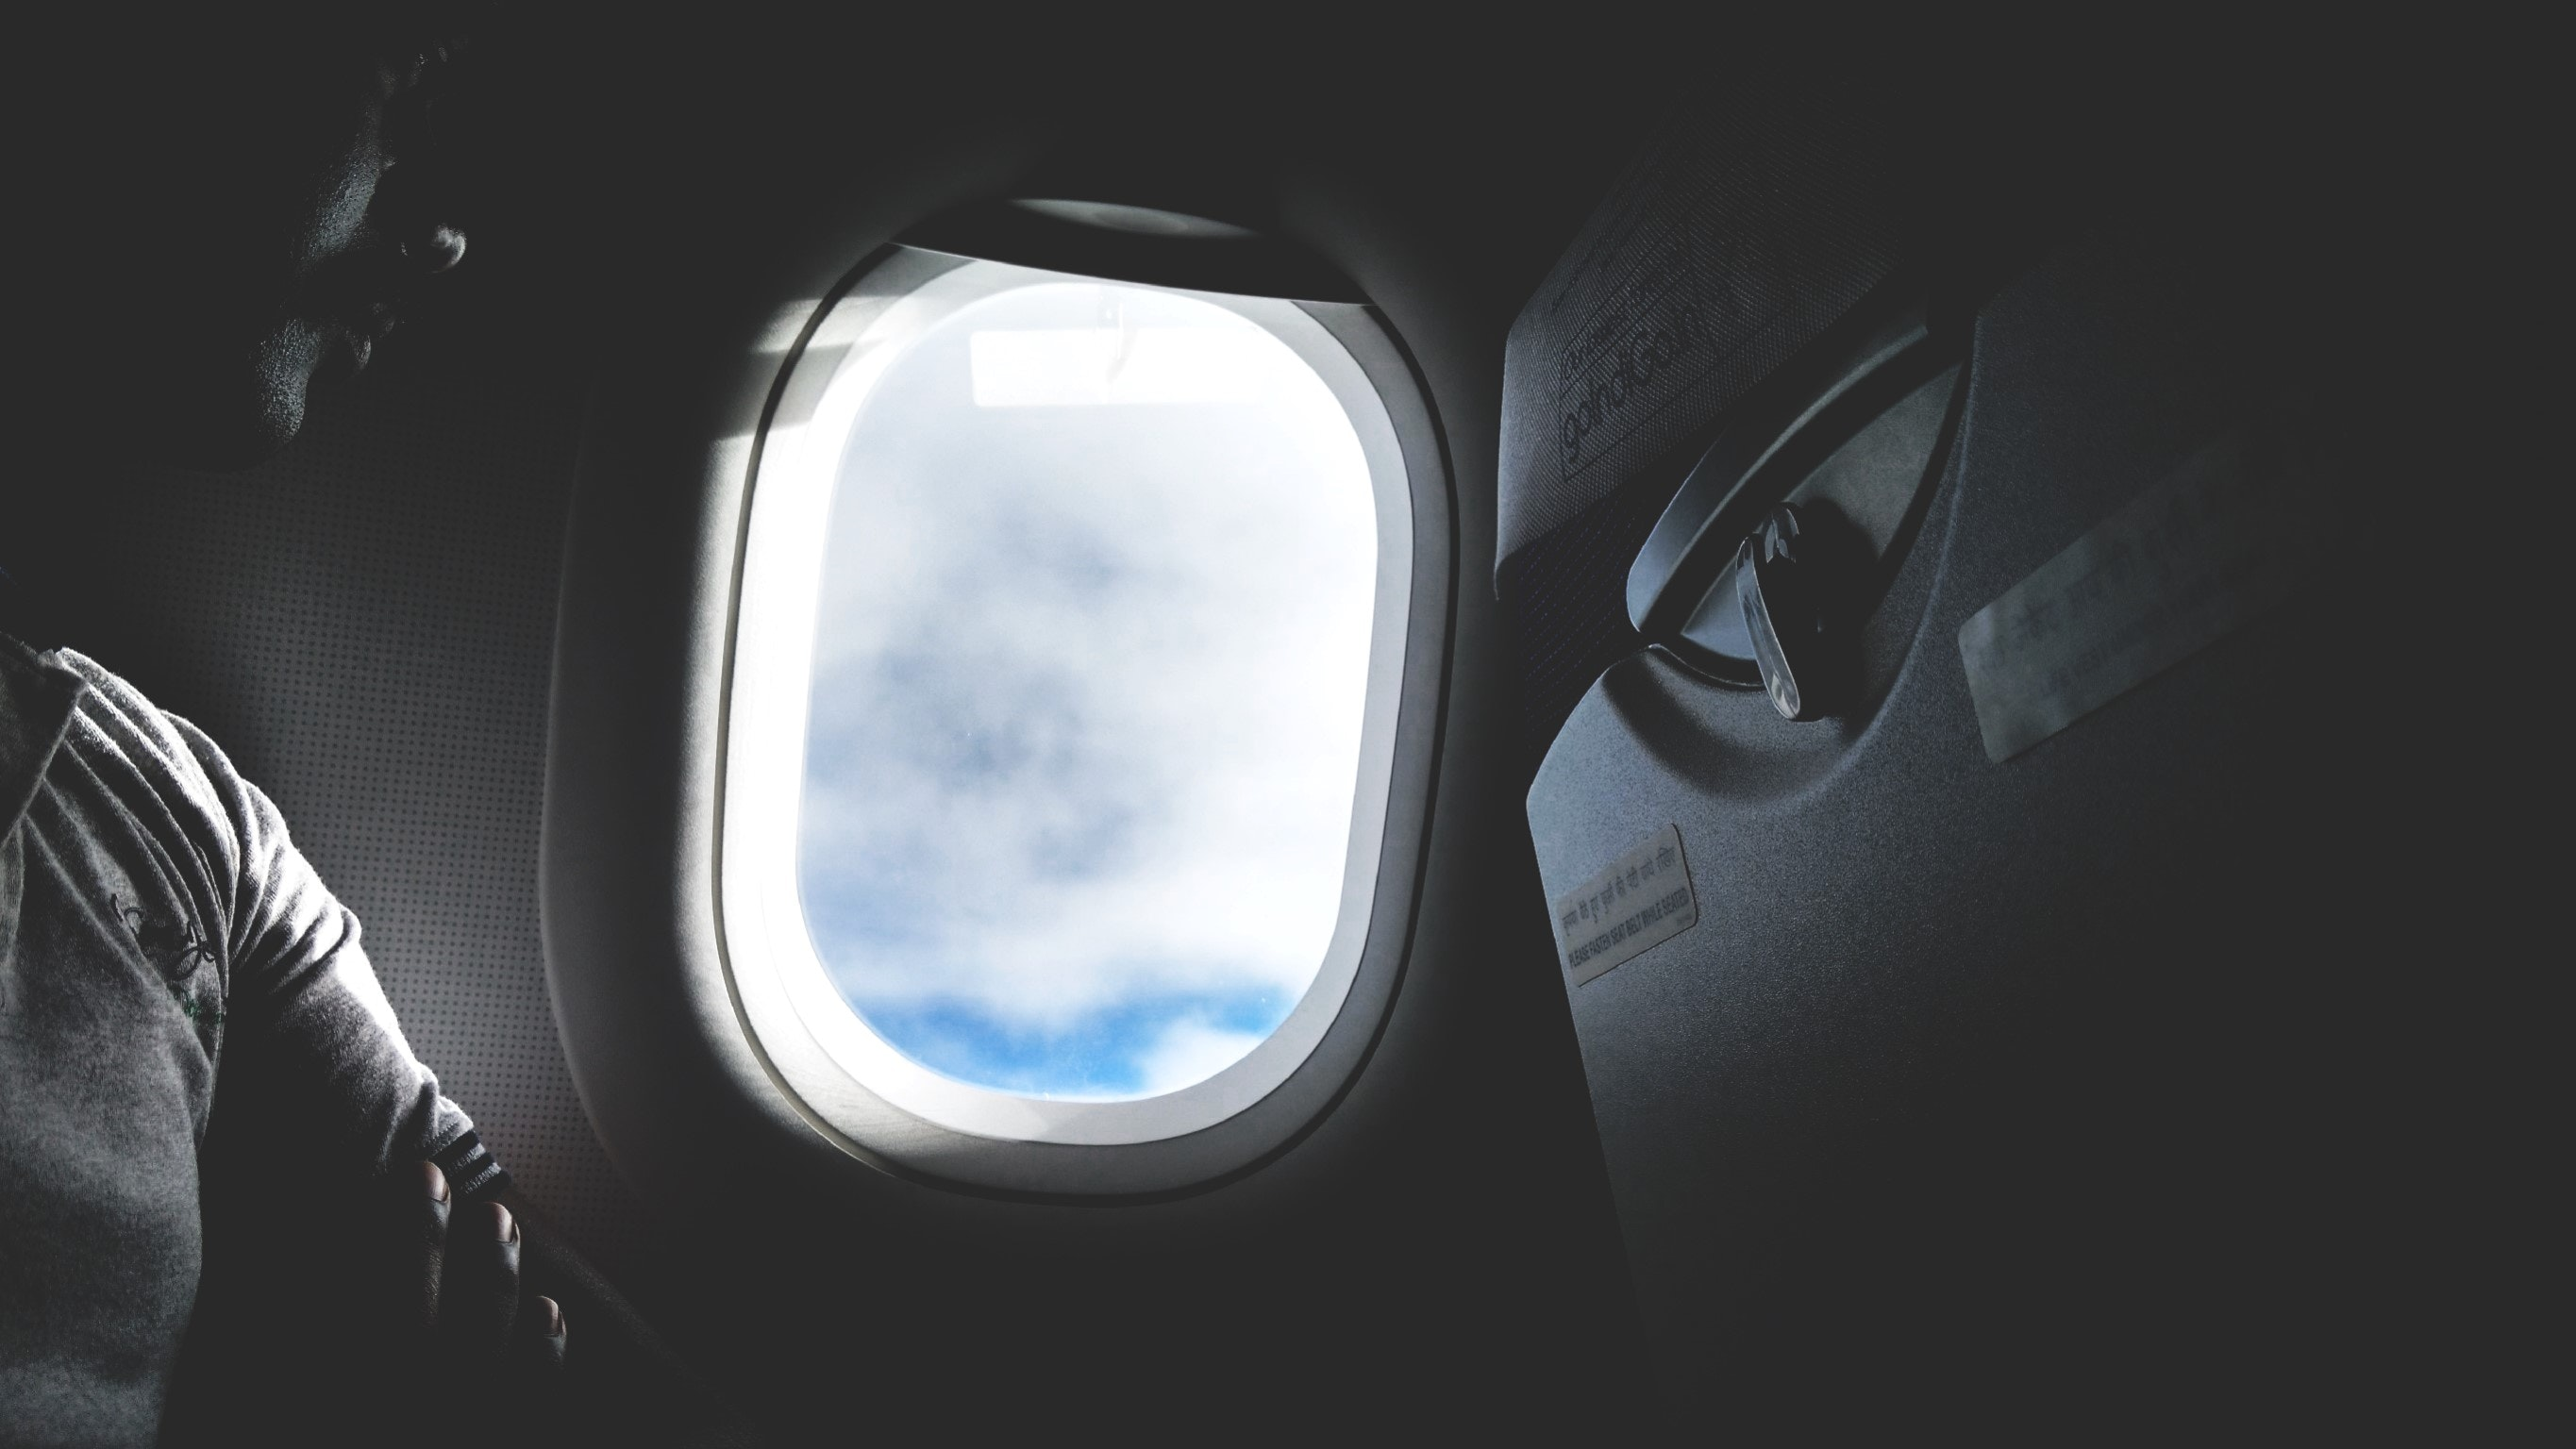 Airplane window opened photo